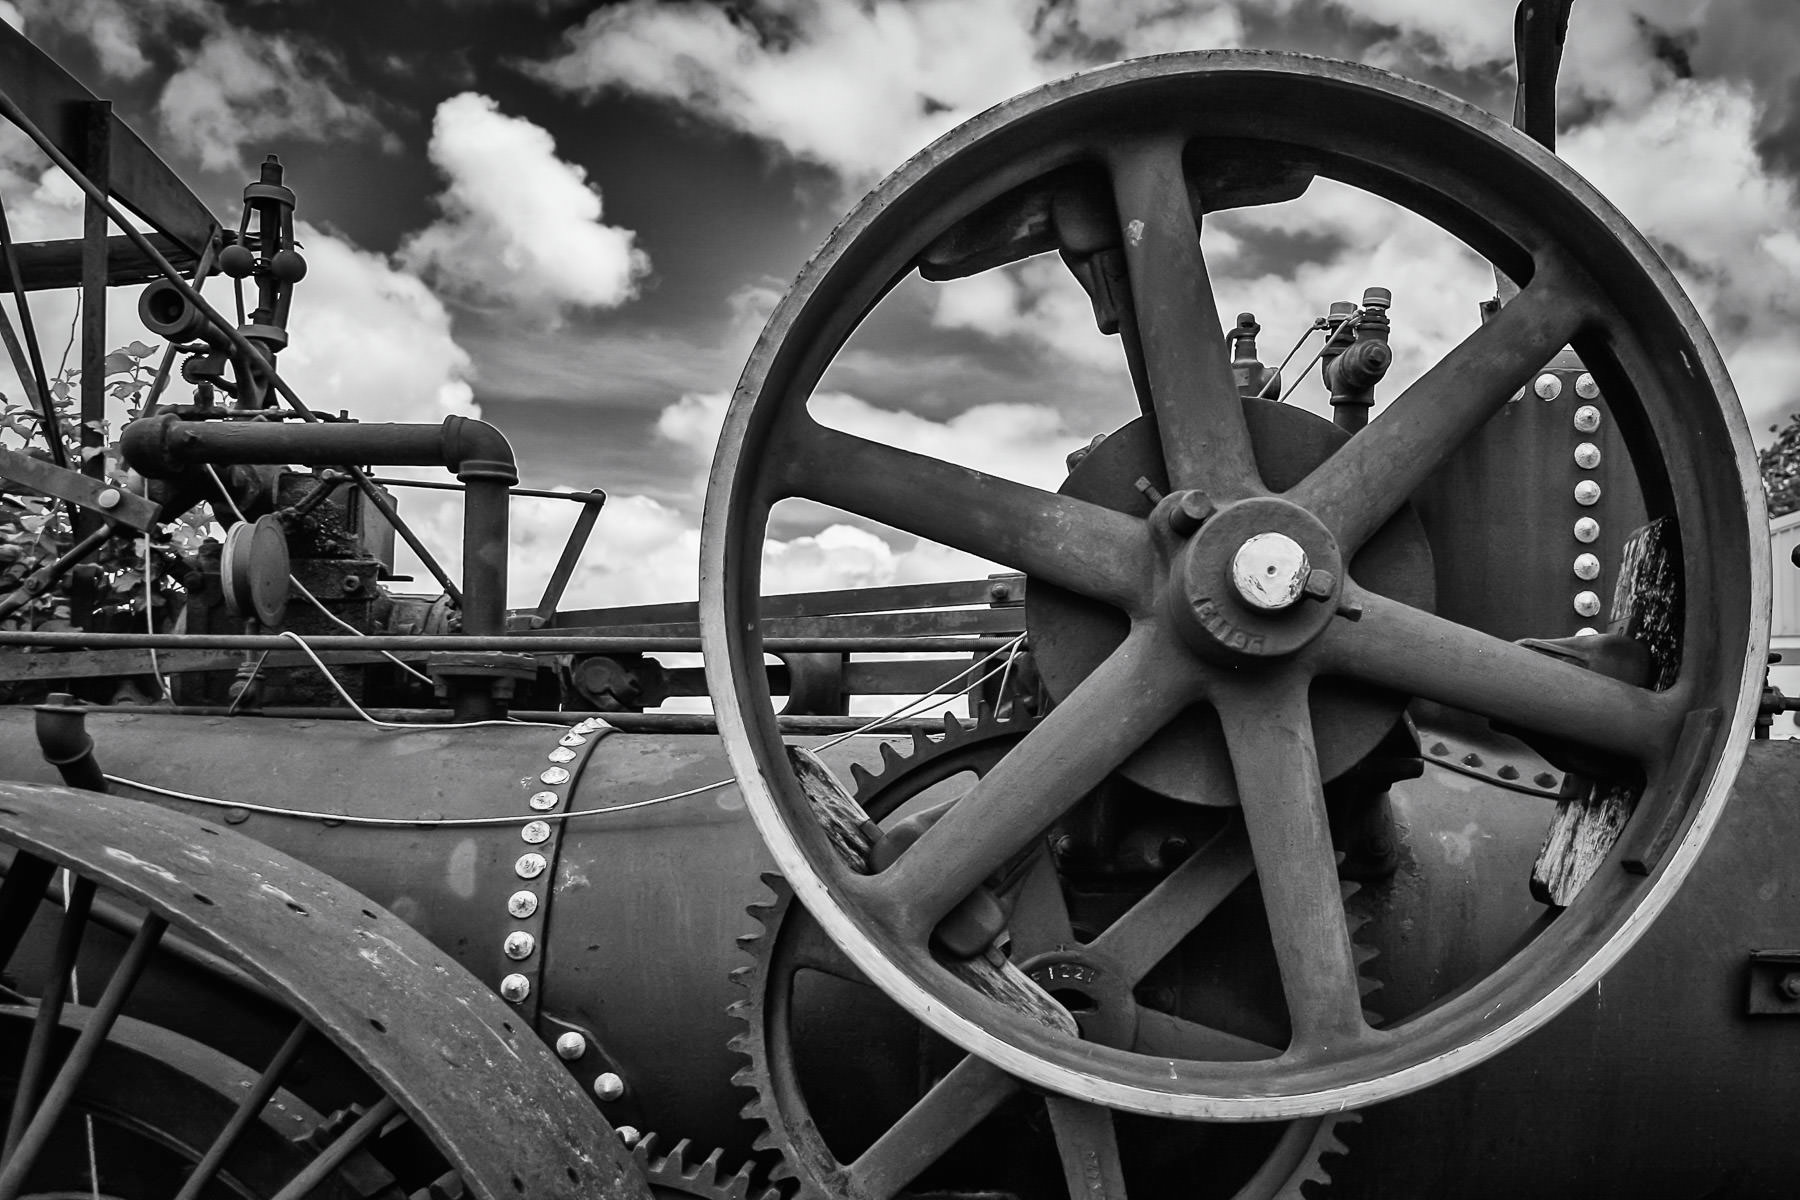 Detail of the engine of an ancient steam-powered tractor in Marietta, Oklahoma.